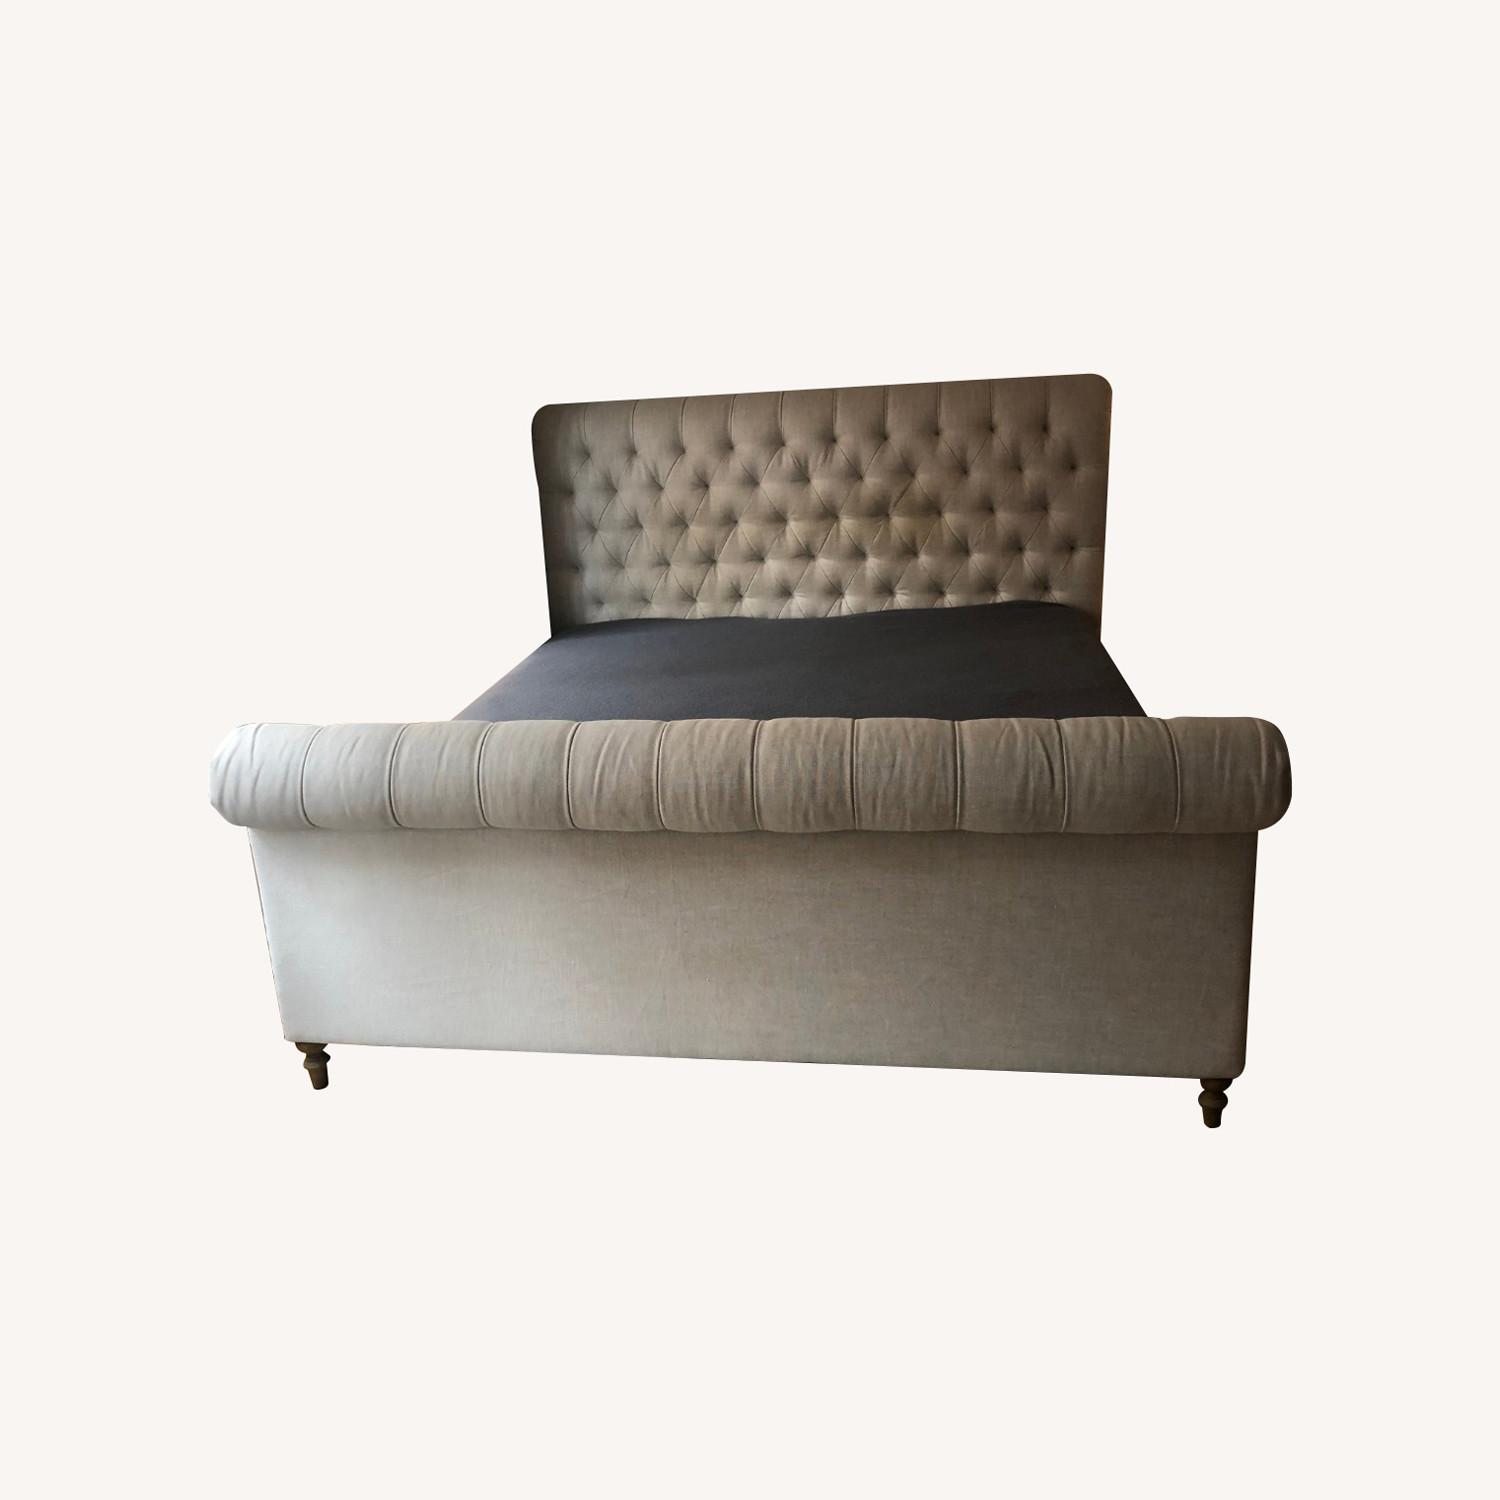 Restoration Hardware Chesterfield with Footboard - image-0